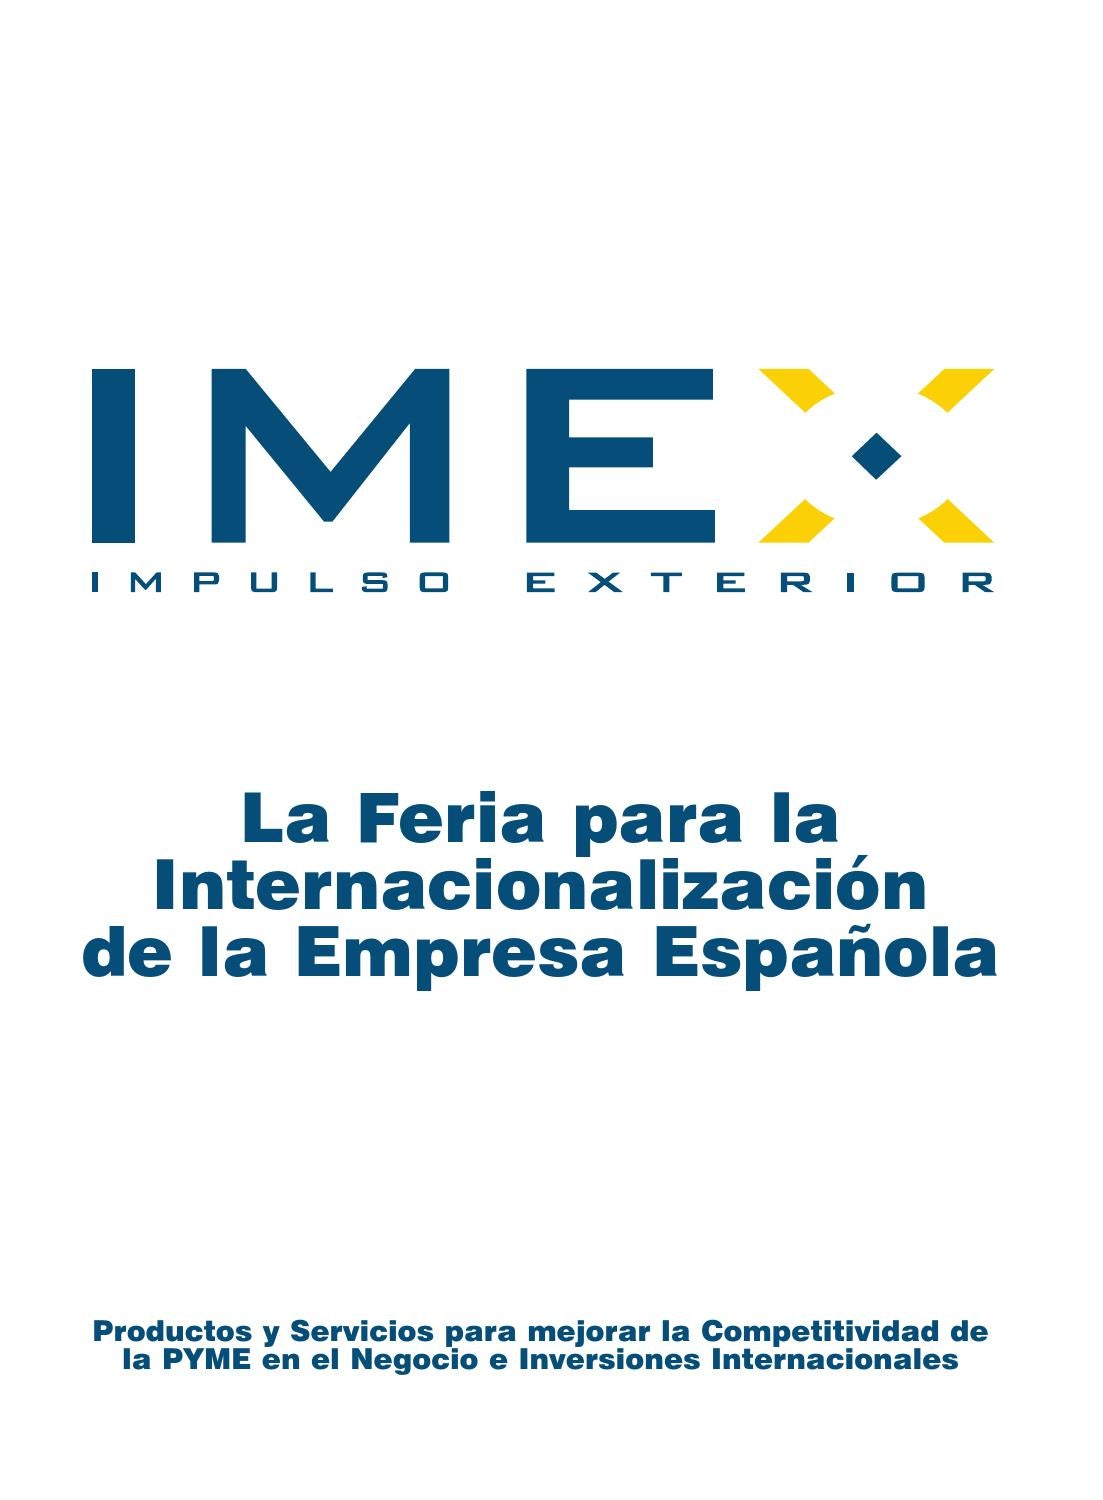 Dossier IMEX parte 1 by Impulso Exterior issuu